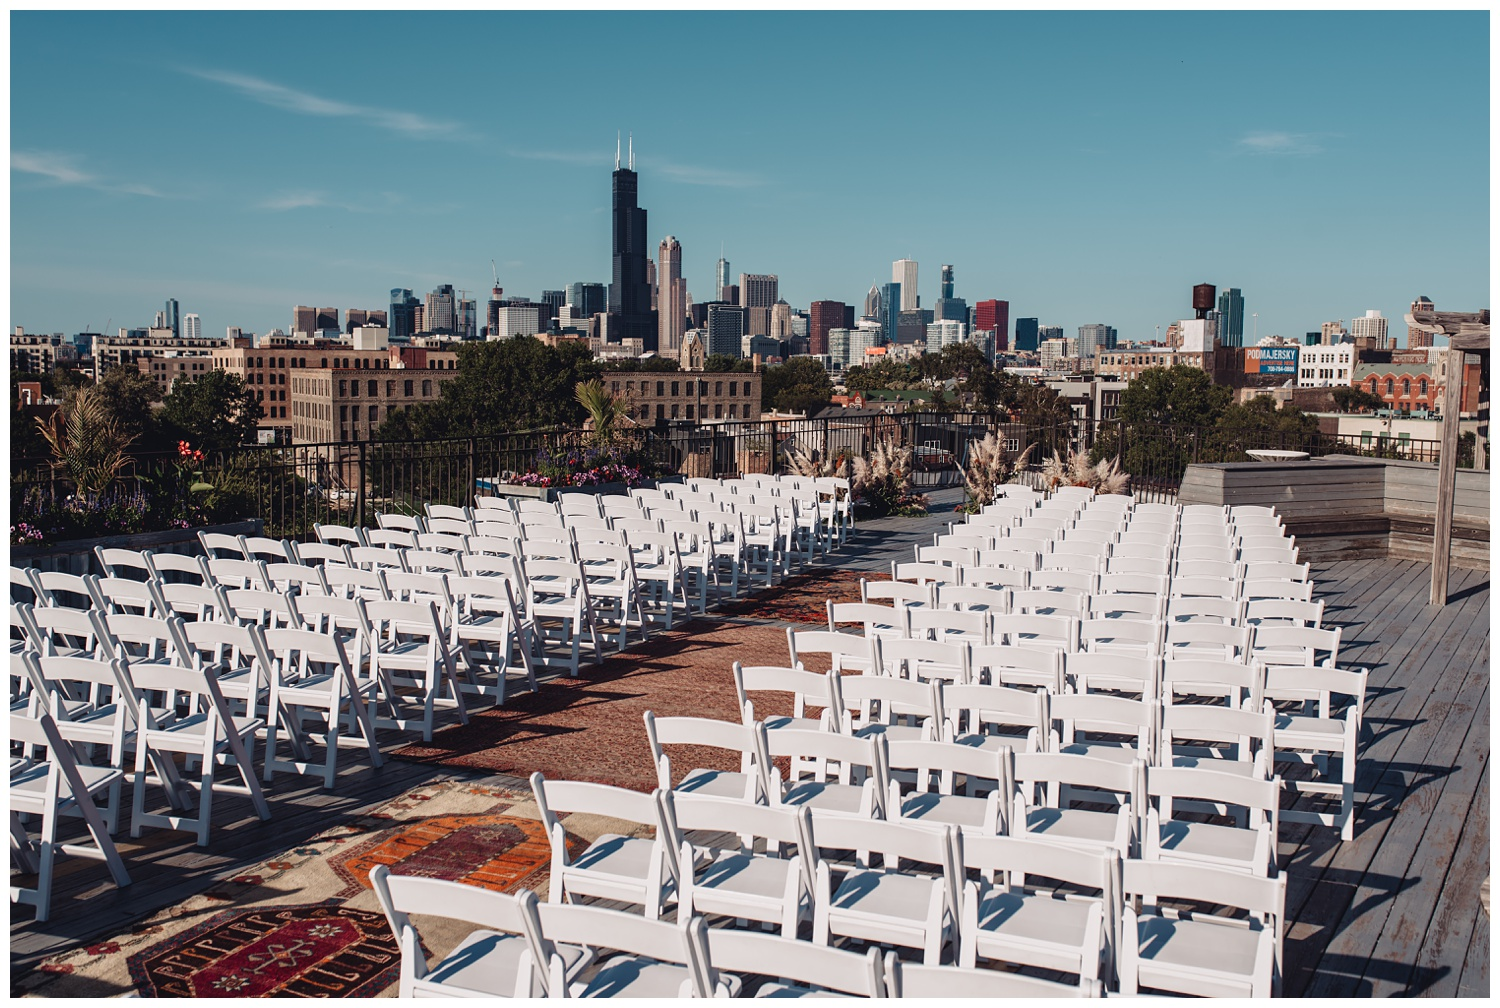 Lacuna Lofts Chicago Wedding Photography - The Adamkovi, rooftop ceremony space skyline view